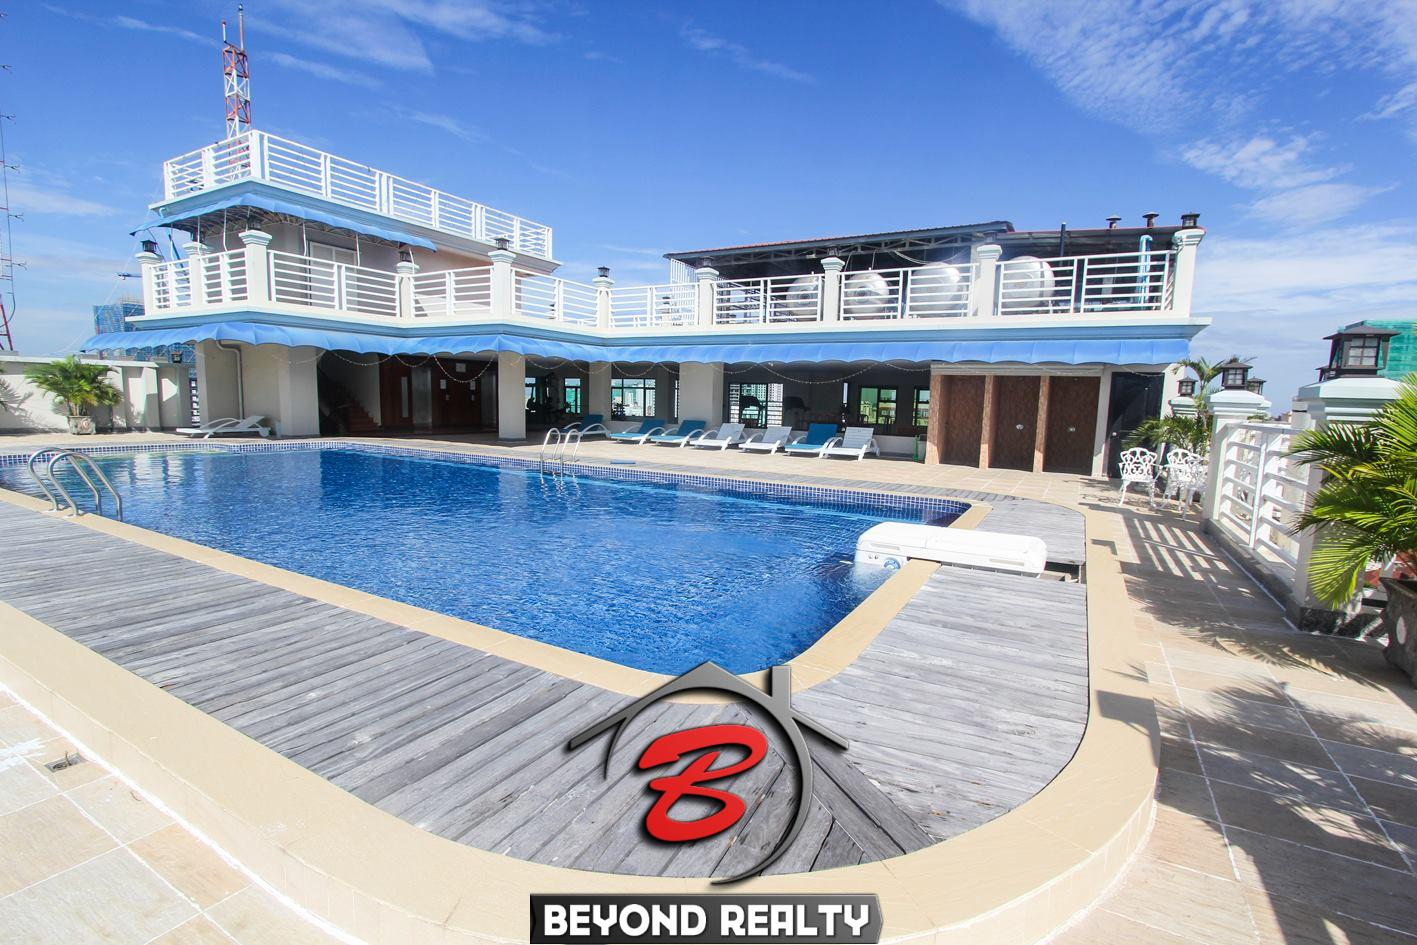 the swimming pool of the 1-bedroom luxury spacious serviced apartment for rent in BKK1 in Phnom Penh in Cambodia